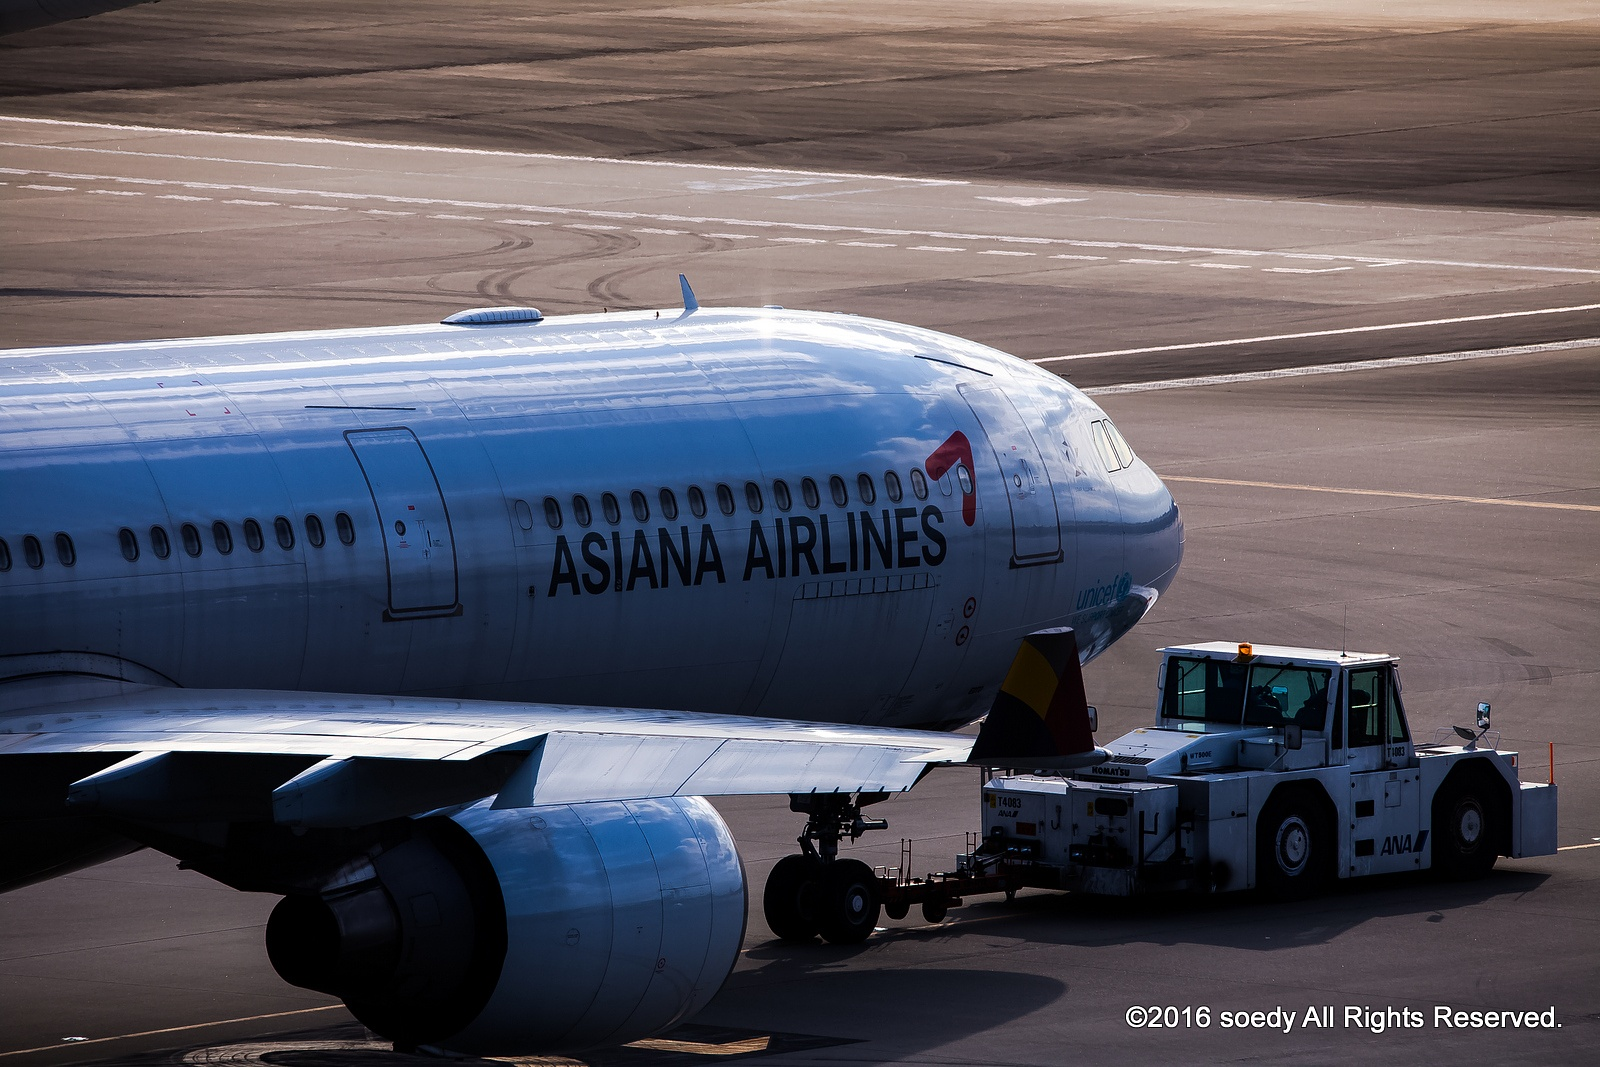 ASIANA AIRLINES by soedy✞